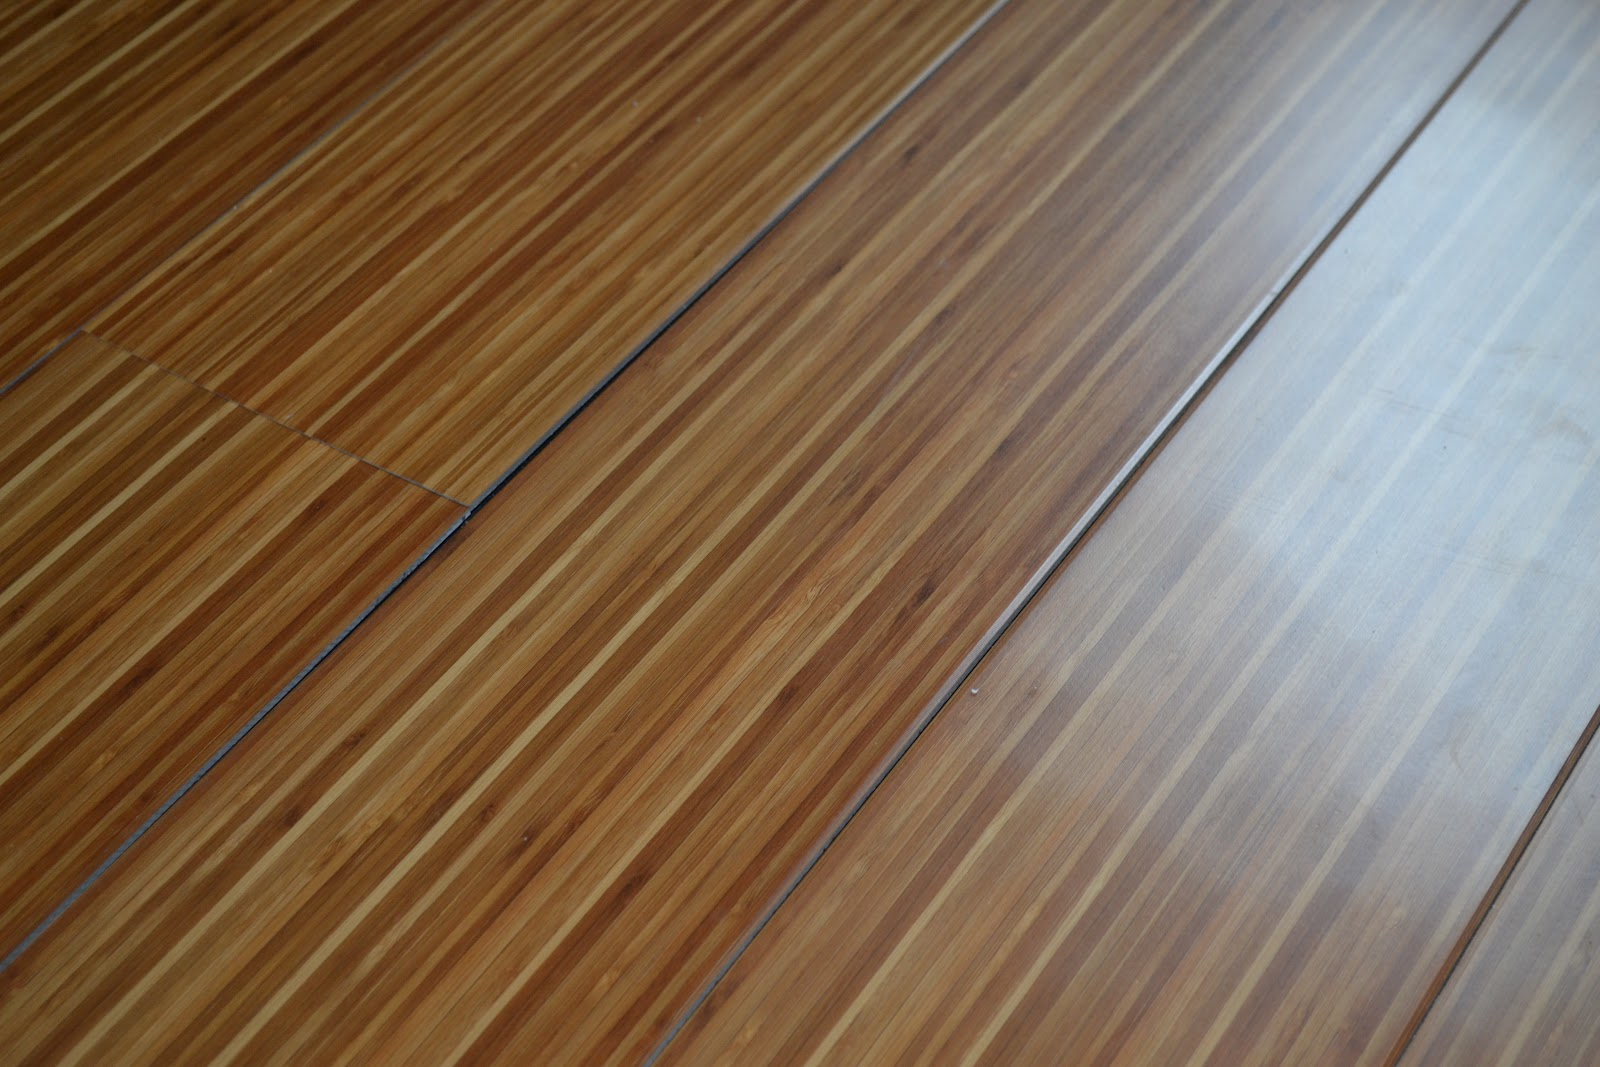 walnut wooden Konecto for flooring ideas